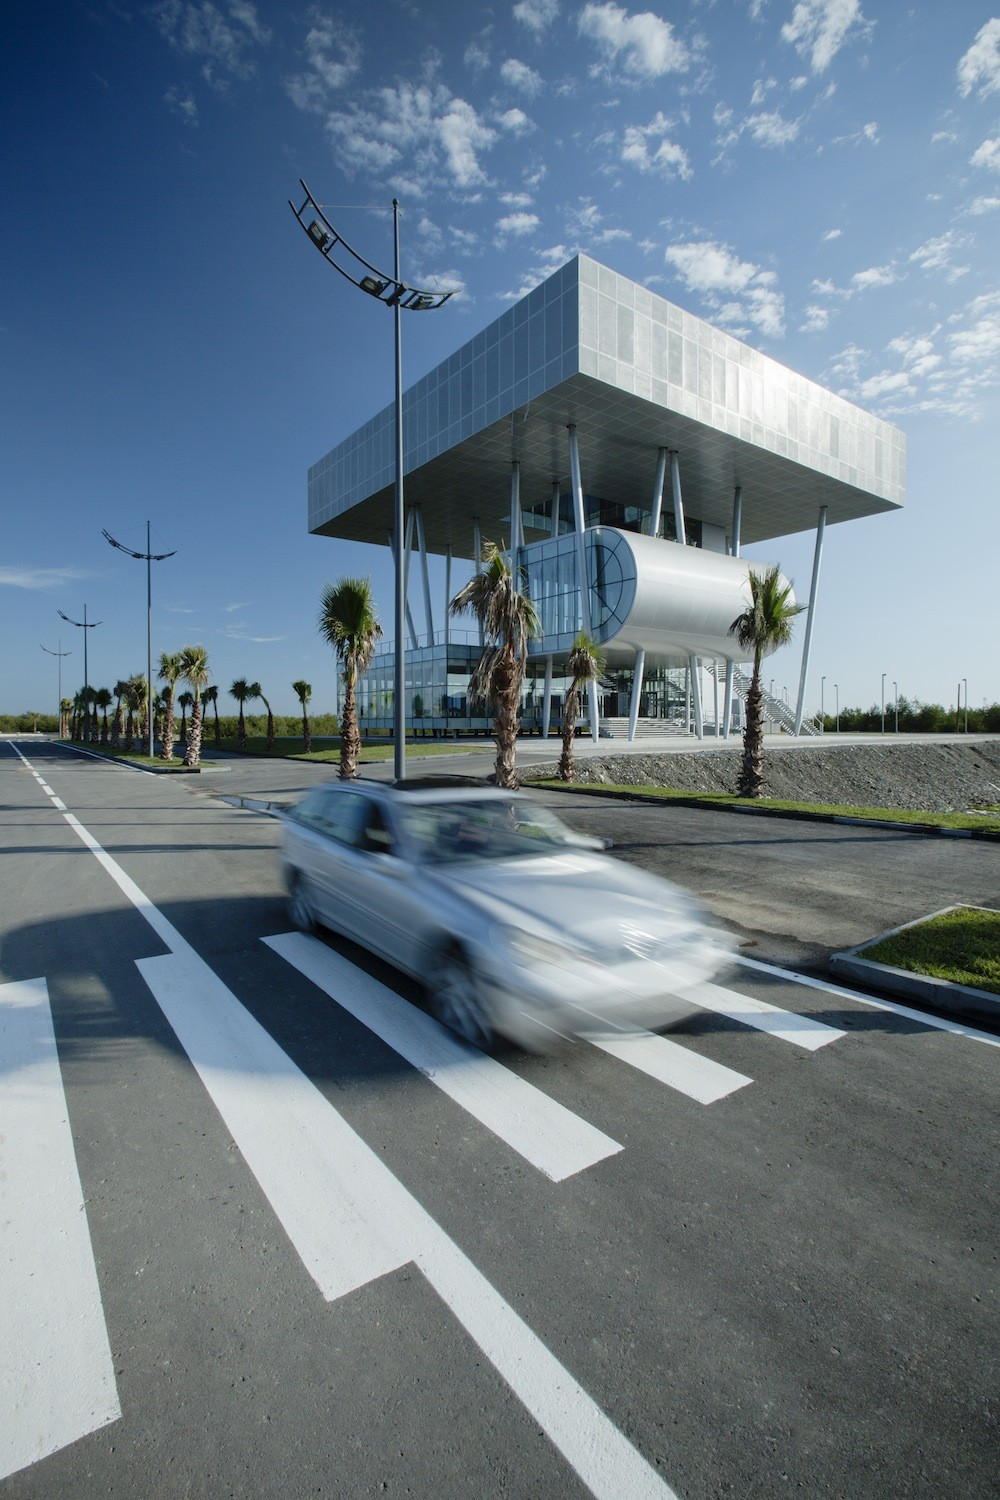 Lazika / Architects of Invention